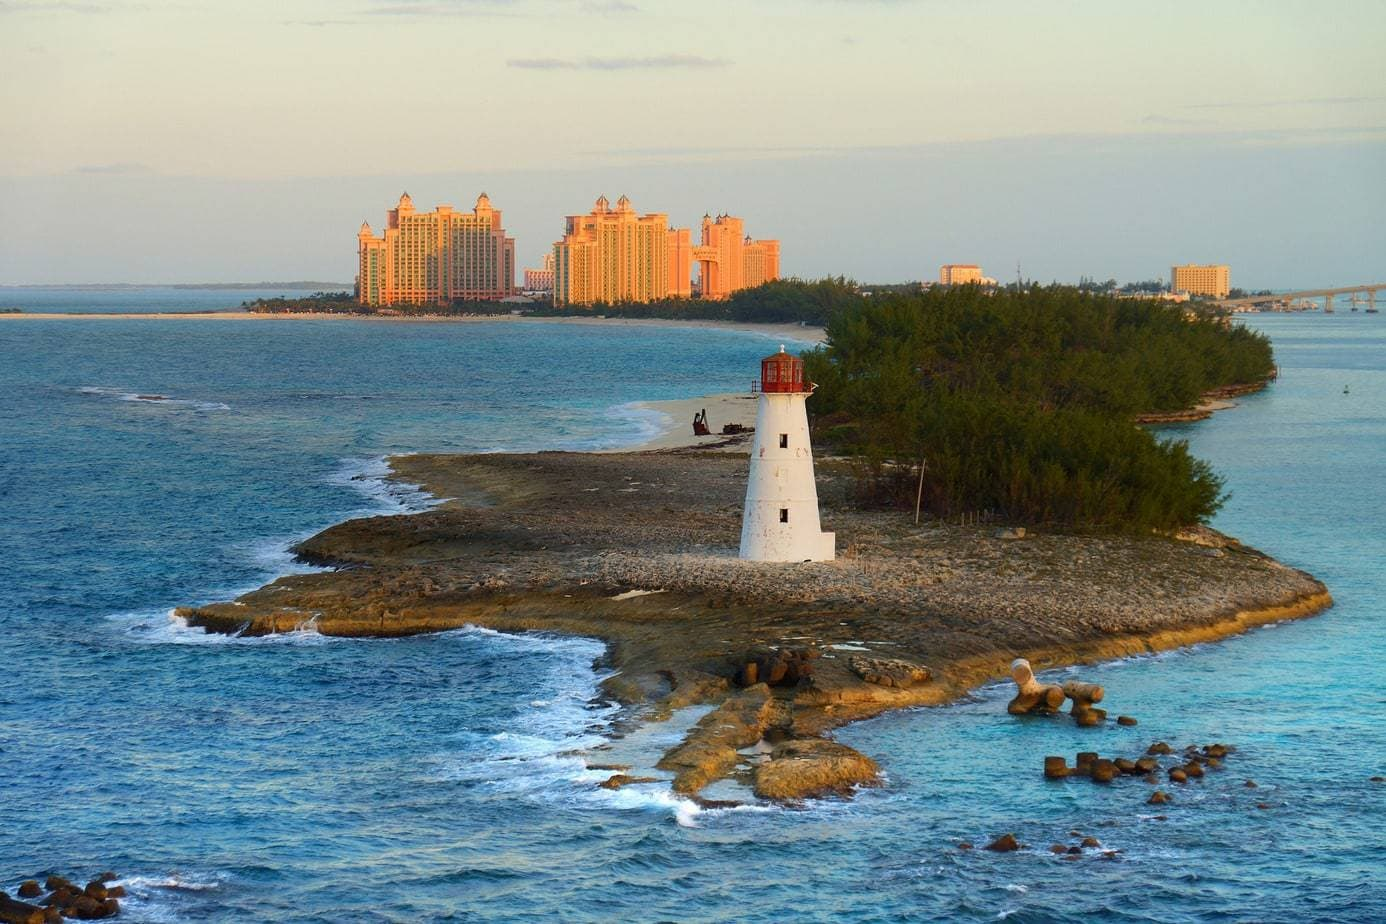 Bahamas lighthouse surrounded by water with Nassau in background